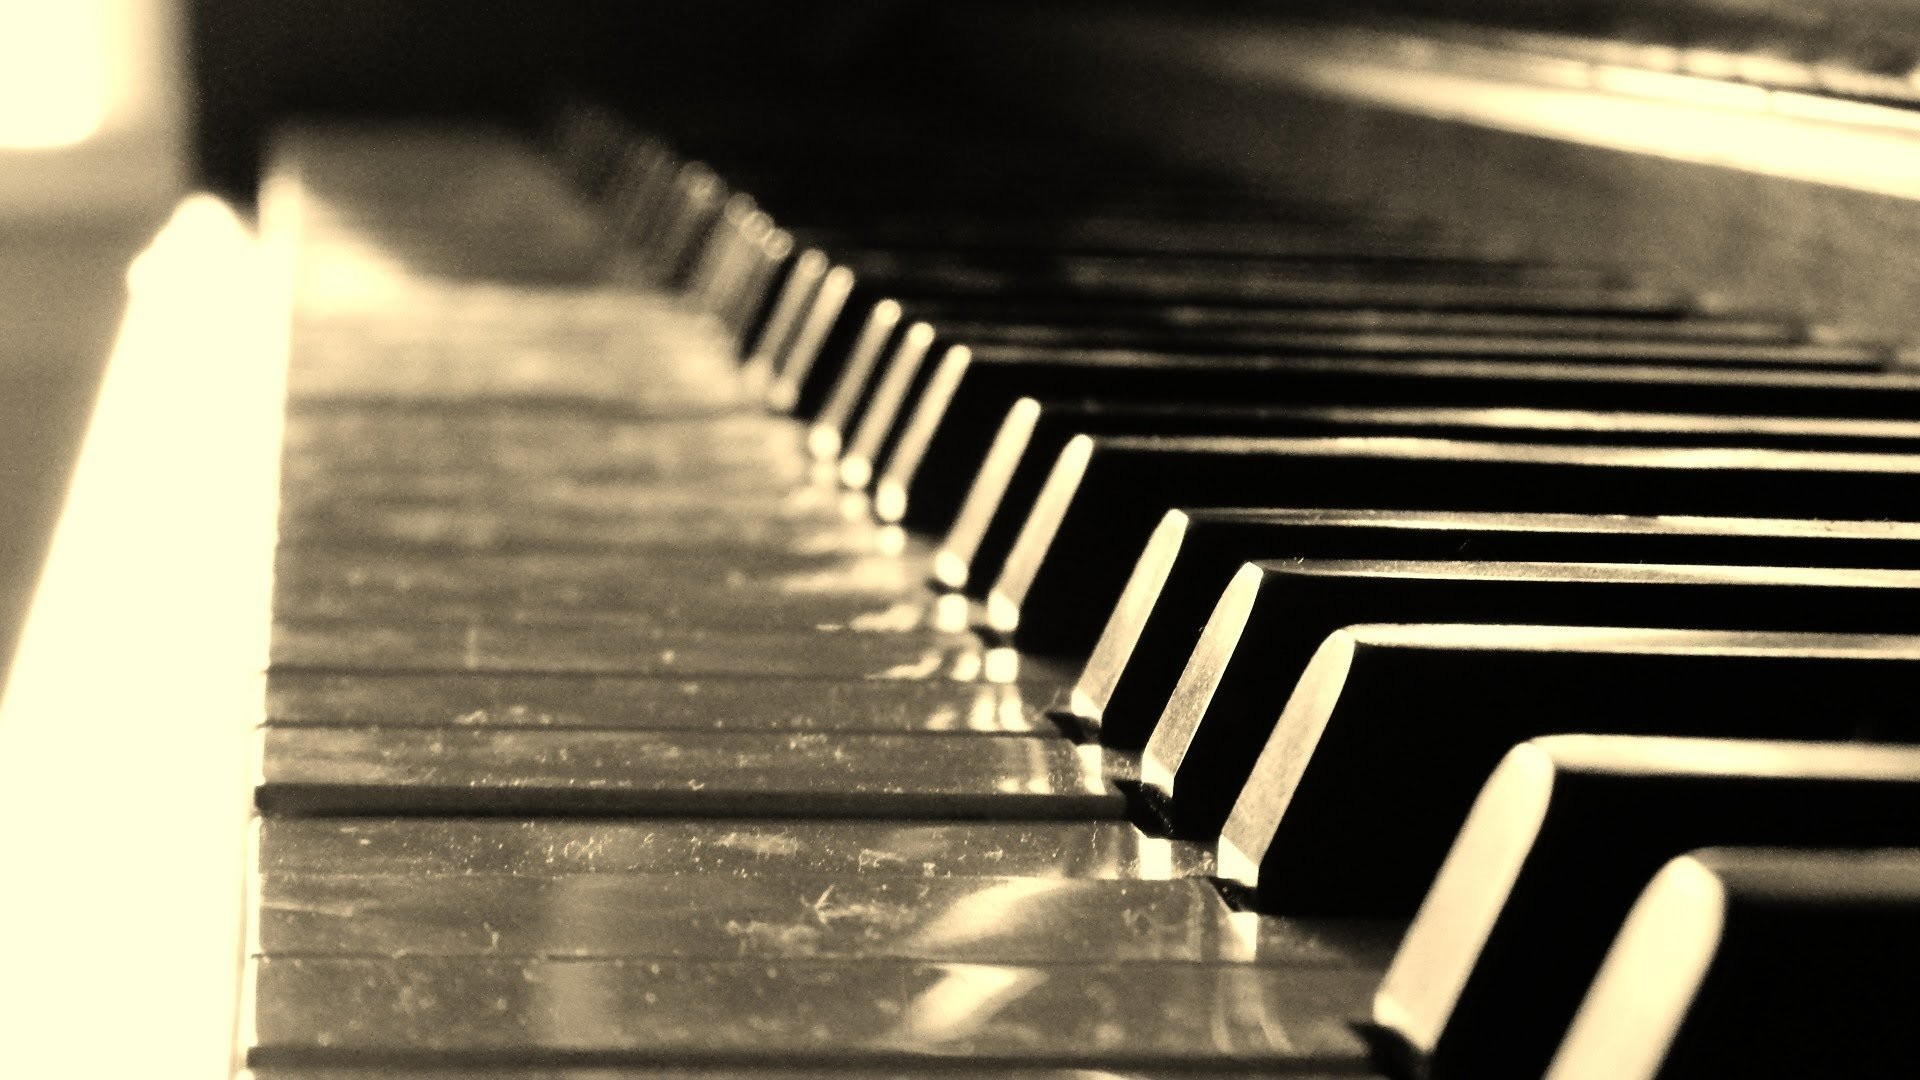 1920x1080 1080x1920 Music Piano Bokeh. Wallpaper 693165